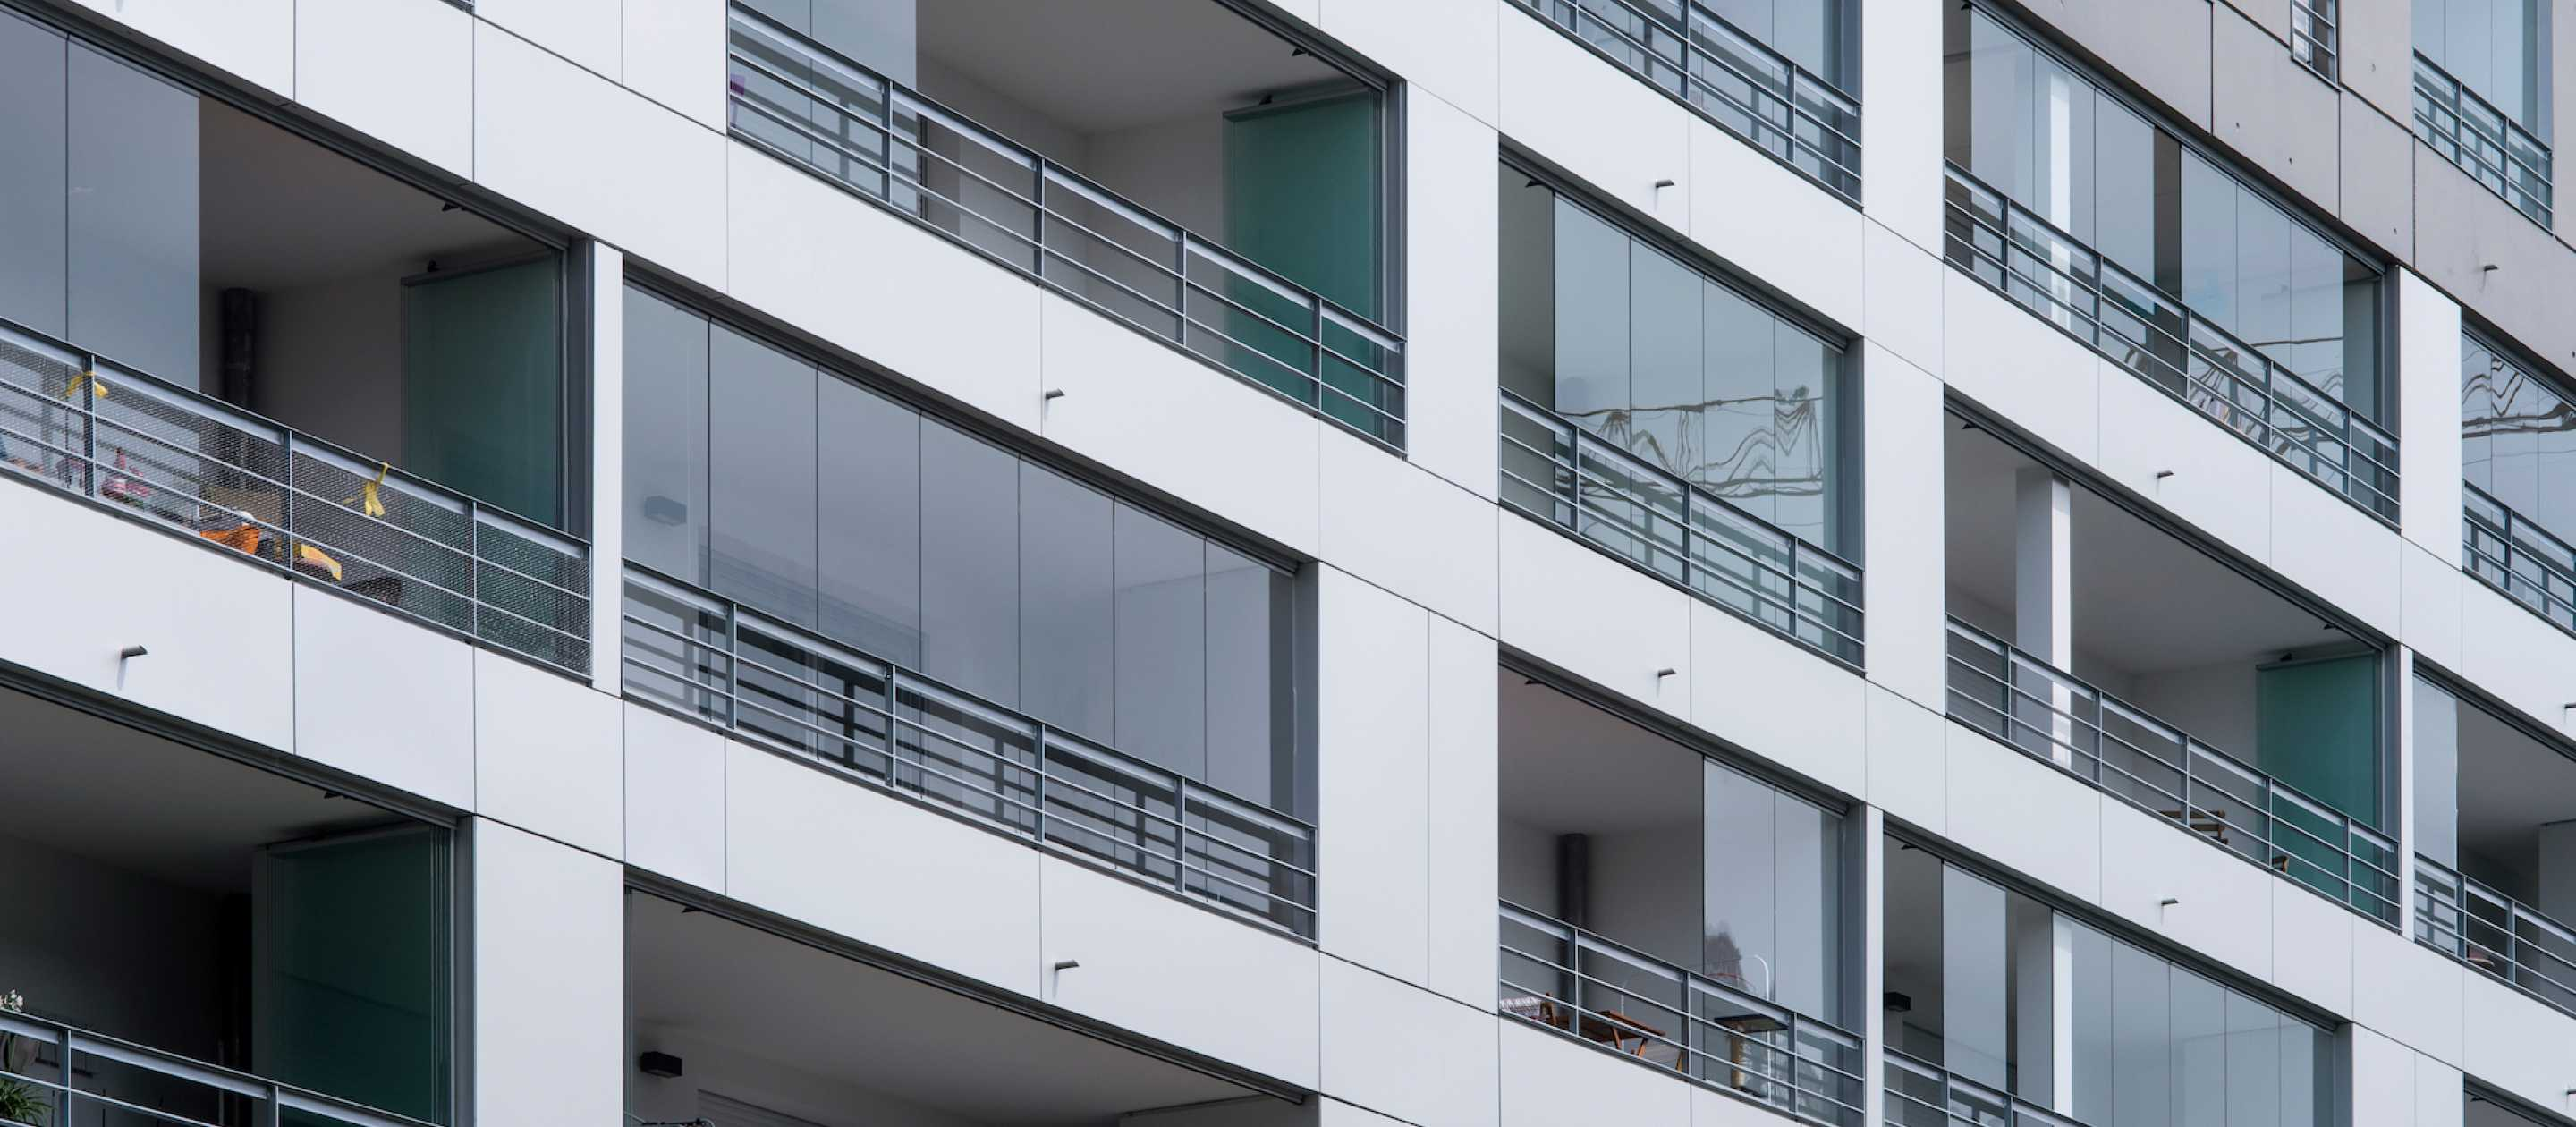 Lumon Canada, retractable glass walls for balconies, balcony glazing, toronto, hamilton, vancouver